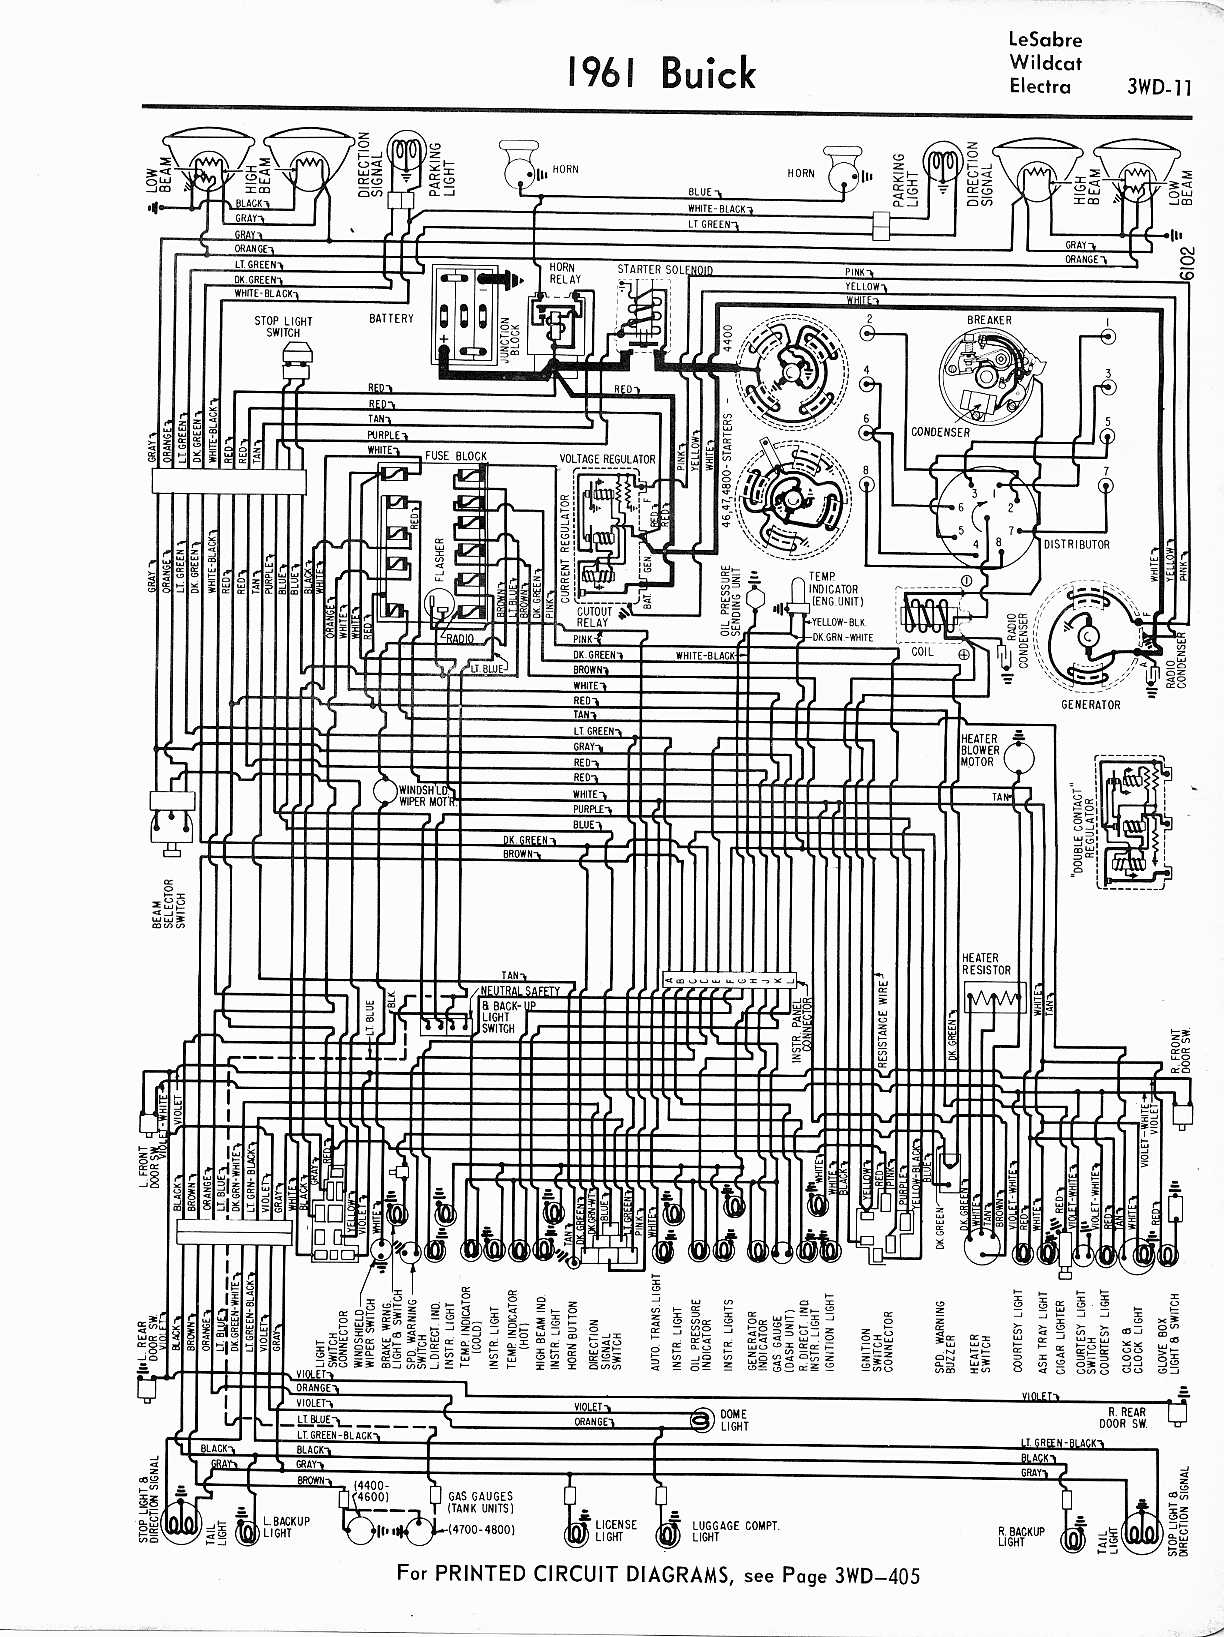 Wiring Diagram For 2002 Buick Lesabre Libraries 2000 Pontiac Aztek Fuse 2001 Amp Third Levelbuick Diagrams 1957 1965